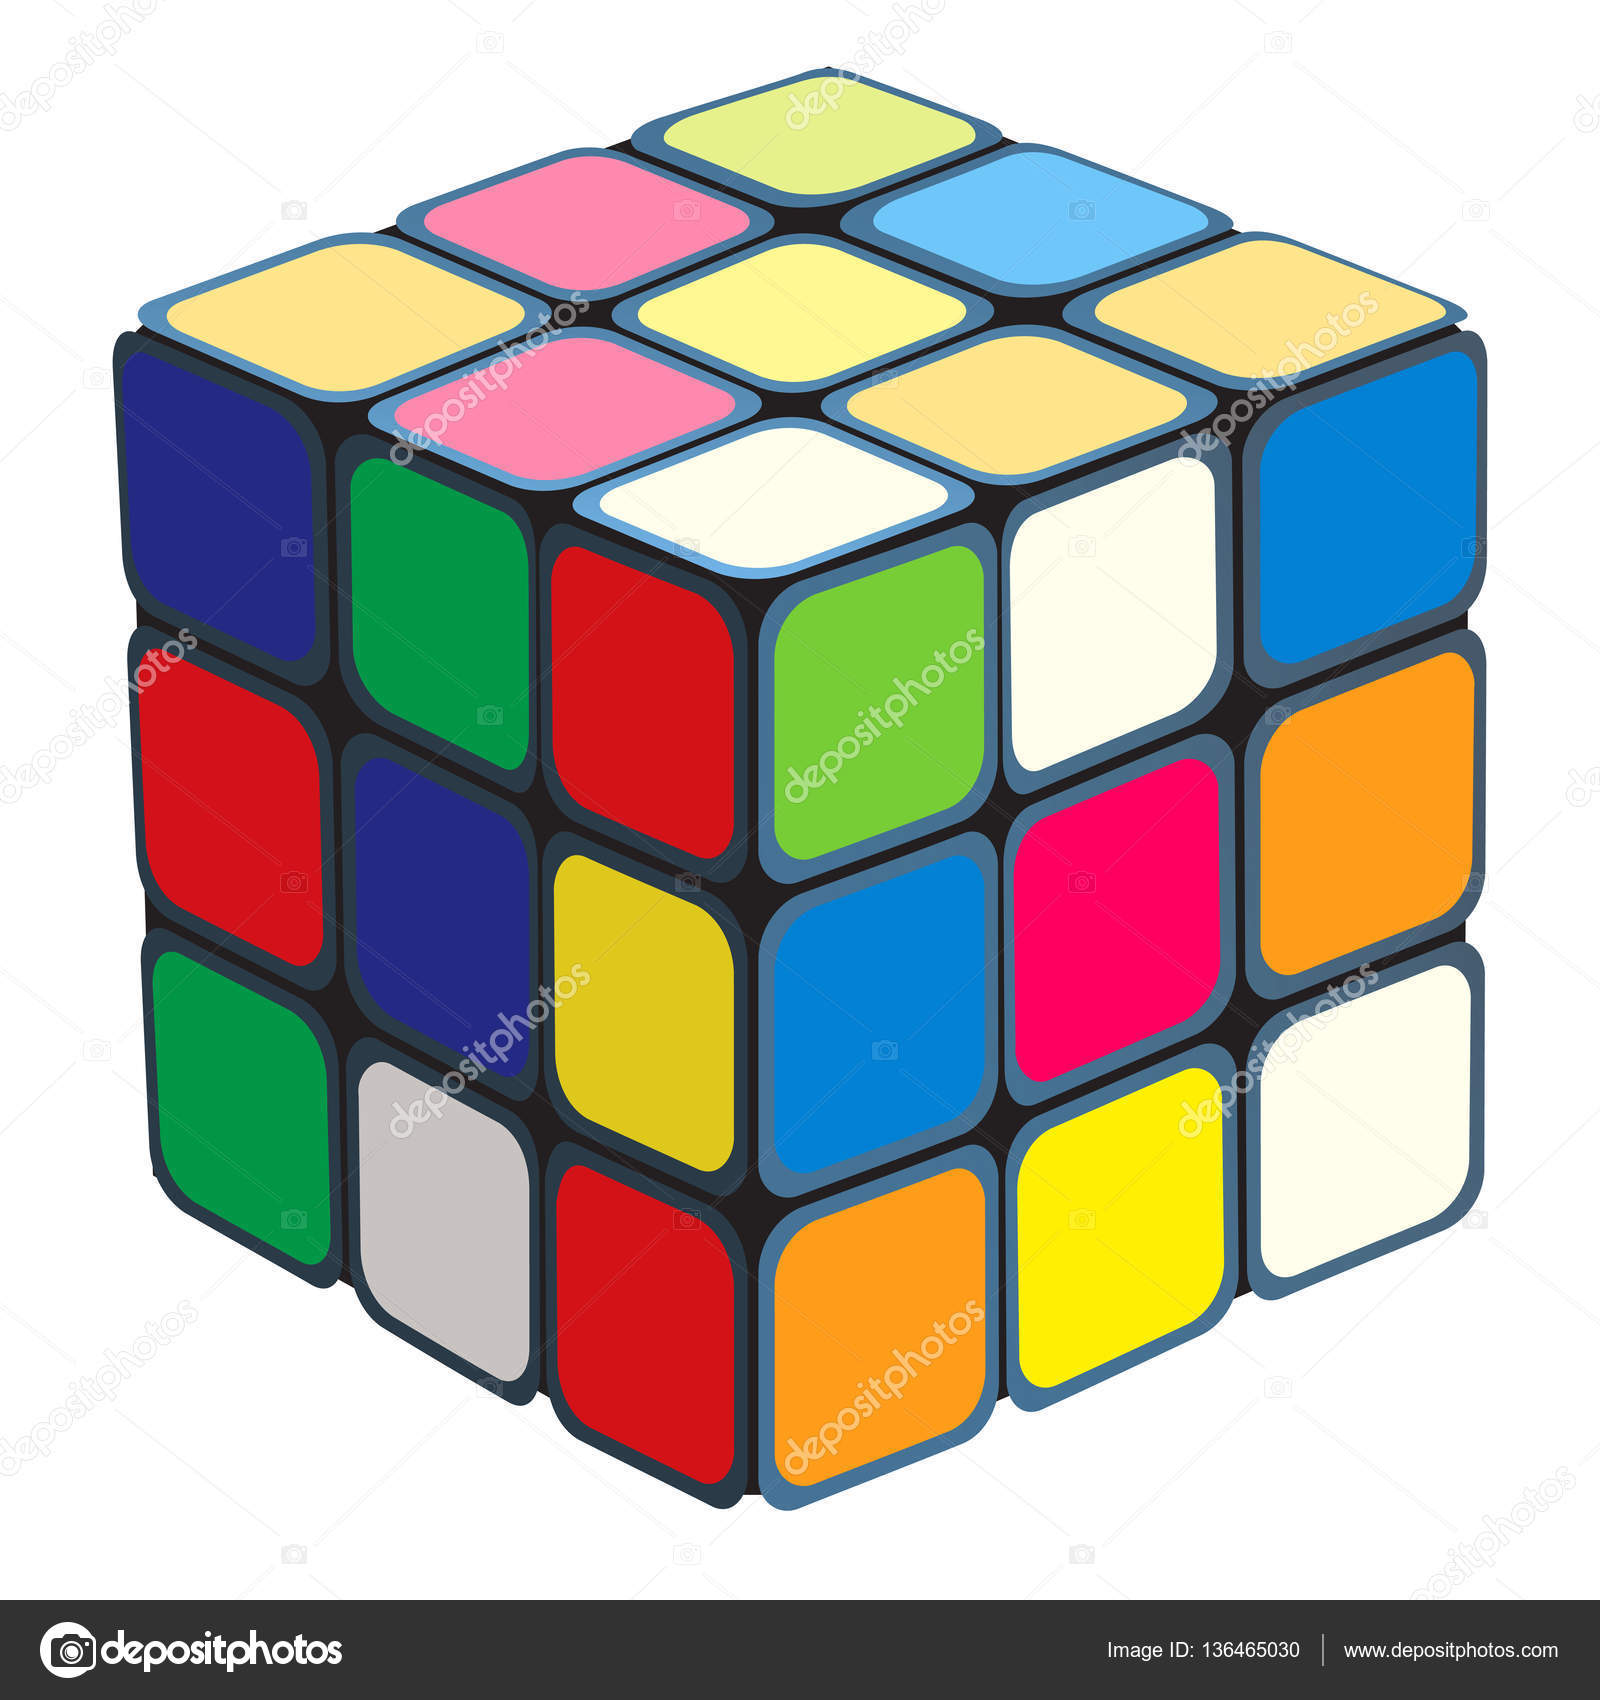 Toy clipart rubik's cube #1